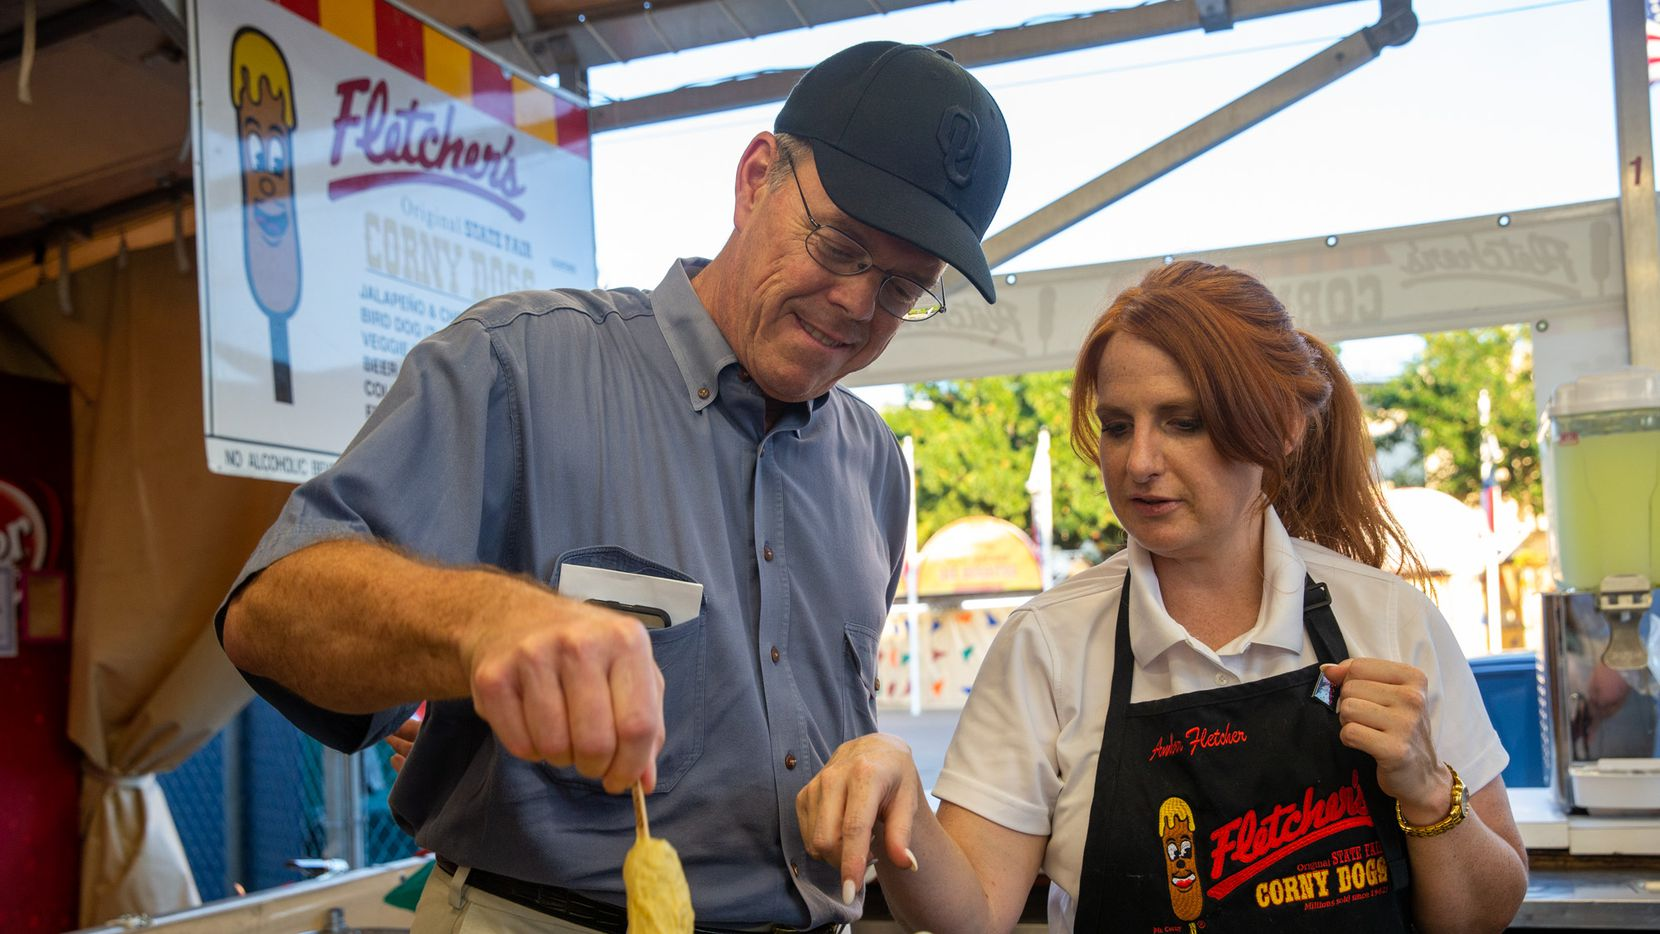 Amber Fletcher (right) teaches The Dallas Morning News subscriber Sam Taylor how to fry a Fletcher's corny dog during a TDMN members event at Fair Park in Dallas on Thursday, Sep. 26, 2019. (Lynda M. Gonzalez/The Dallas Morning News)